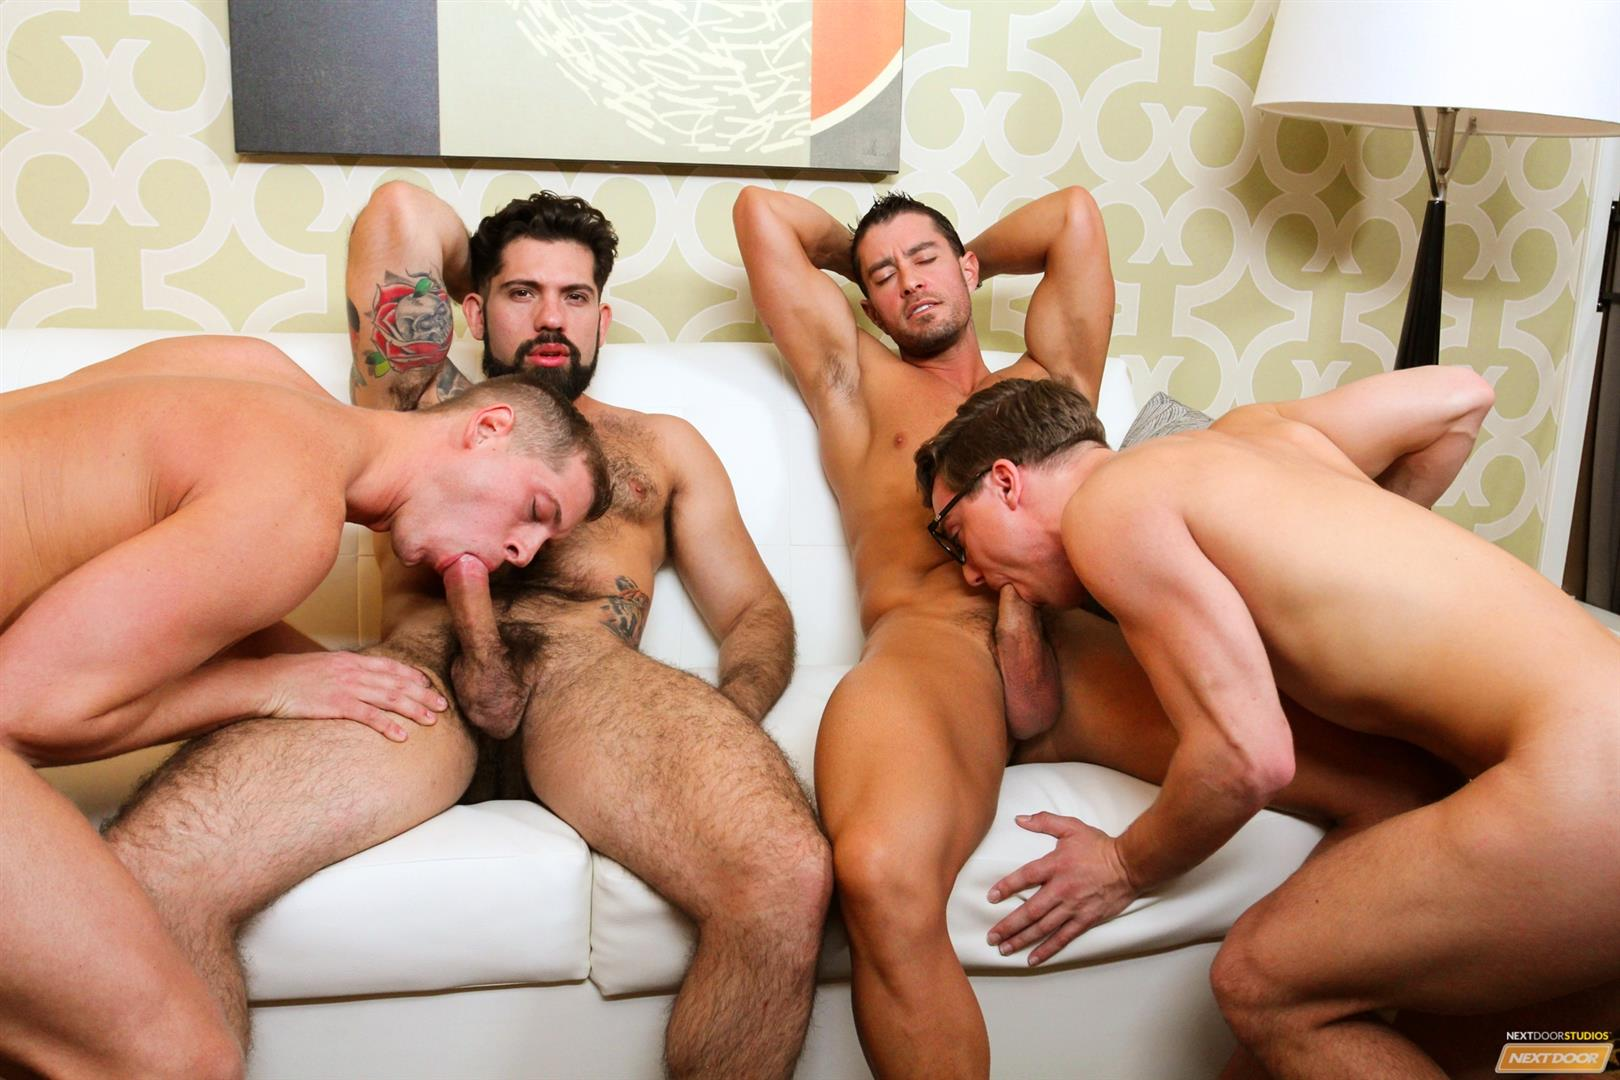 Cody-Cummings-and-Tyler-Morgan-and-Alessandro-Del-Torro-Cock-Sucking-Lessons-Amateur-Gay-Porn-15 Cody Cummings Gives The Boys Cock Sucking Lessons